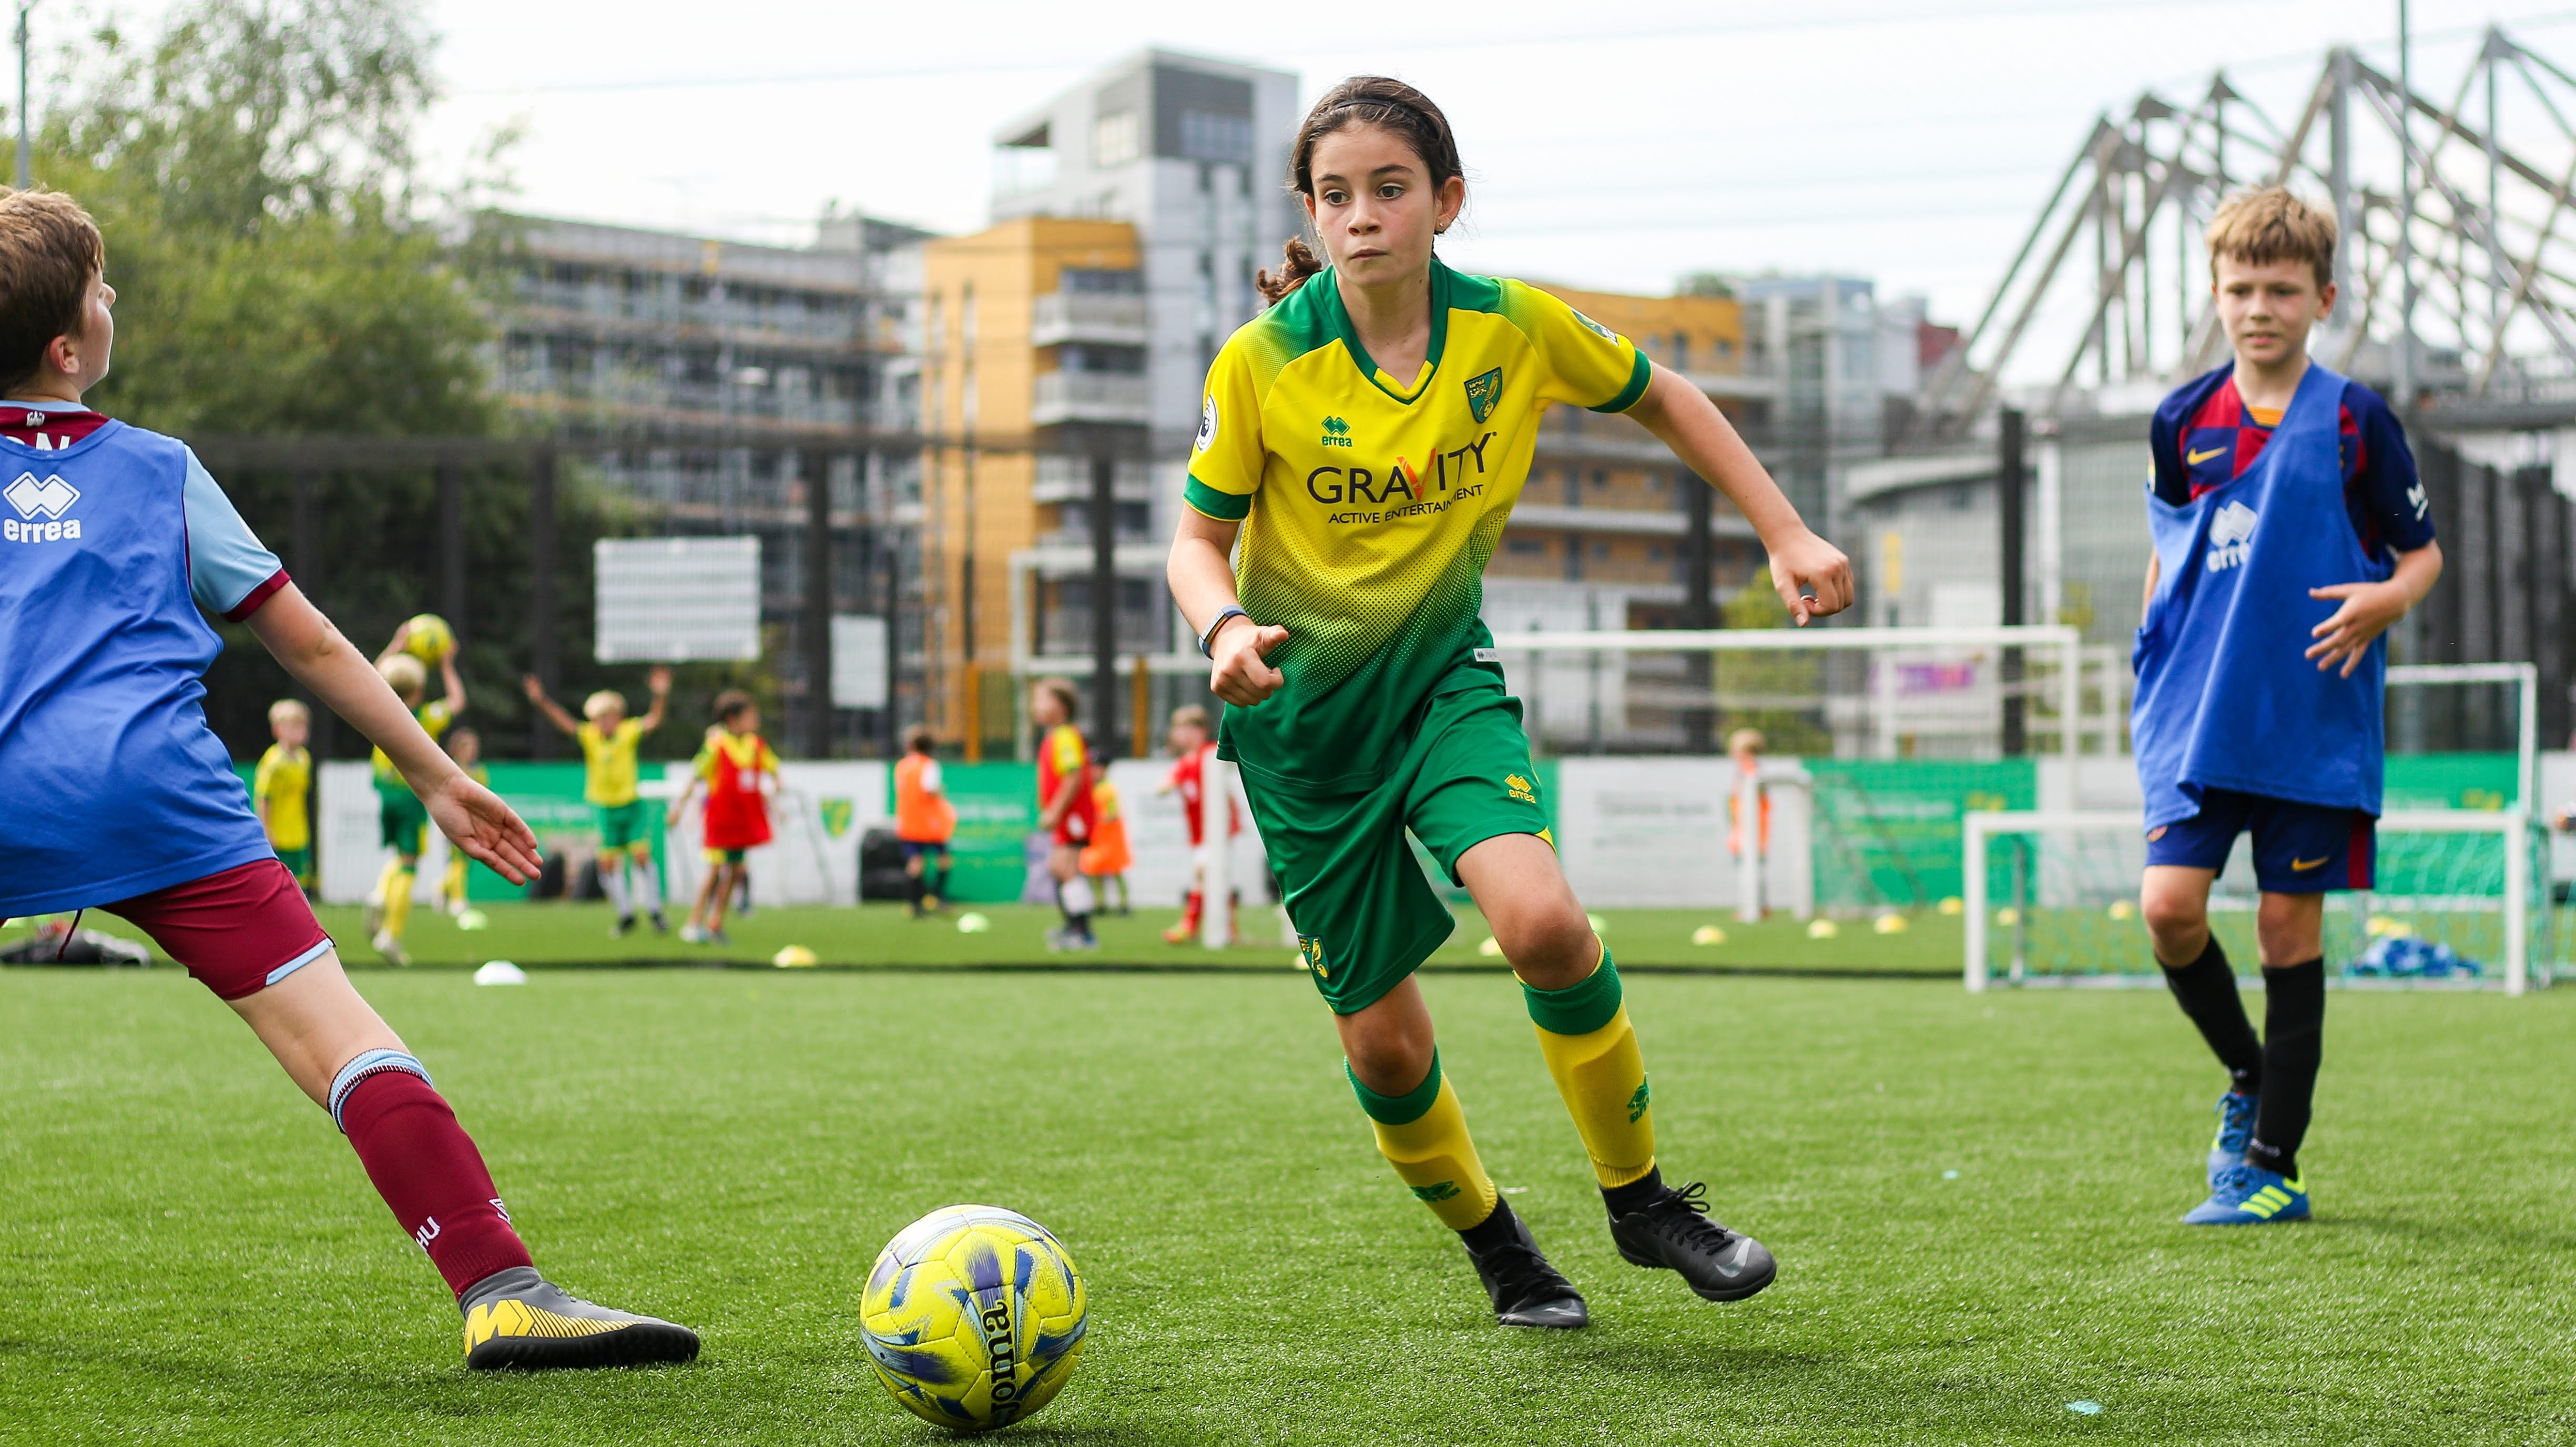 free-girls-pdc-taster-sessions